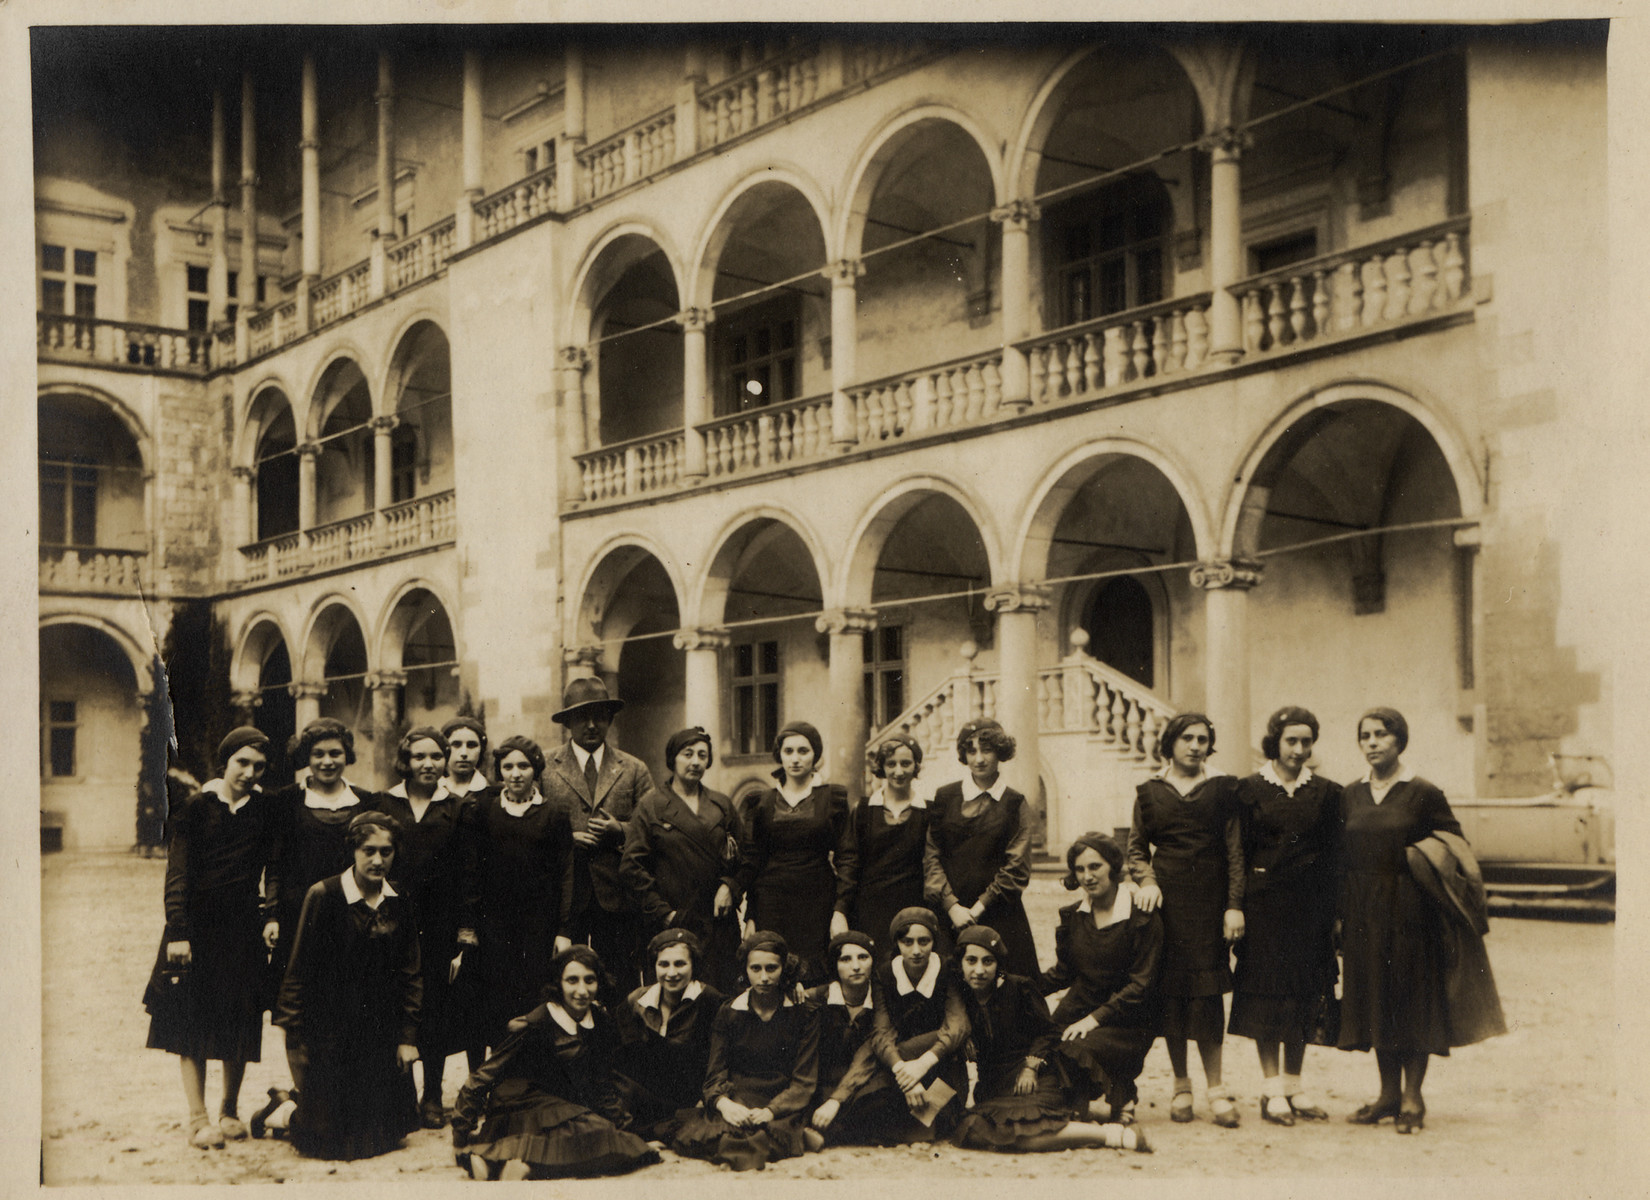 Group portrait of girls from the Hochsztajnowa Gymnasium of Lodz in the courtyard of the Wawel Castle in Krakow where they went on a field trip.  Tonia Bialar is seated in the front row on the far left.